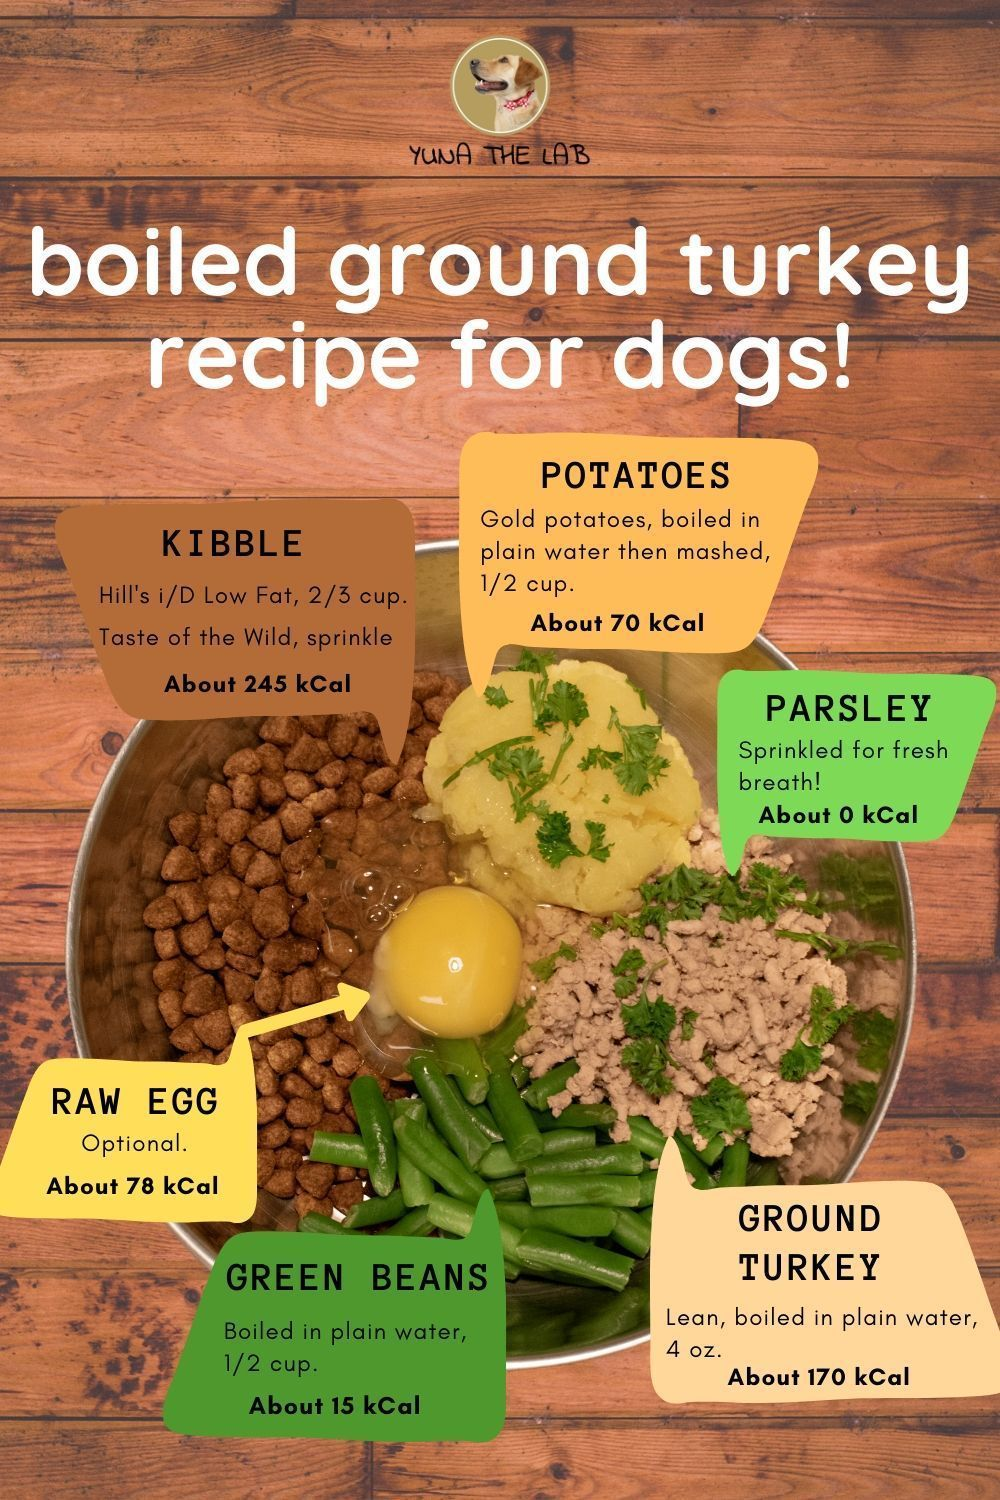 Boiled Ground Turkey For Dogs Recipe Thanksgiving Theme Raw Dog Food Recipes Healthy Dog Food Homemade Healthy Dog Food Recipes